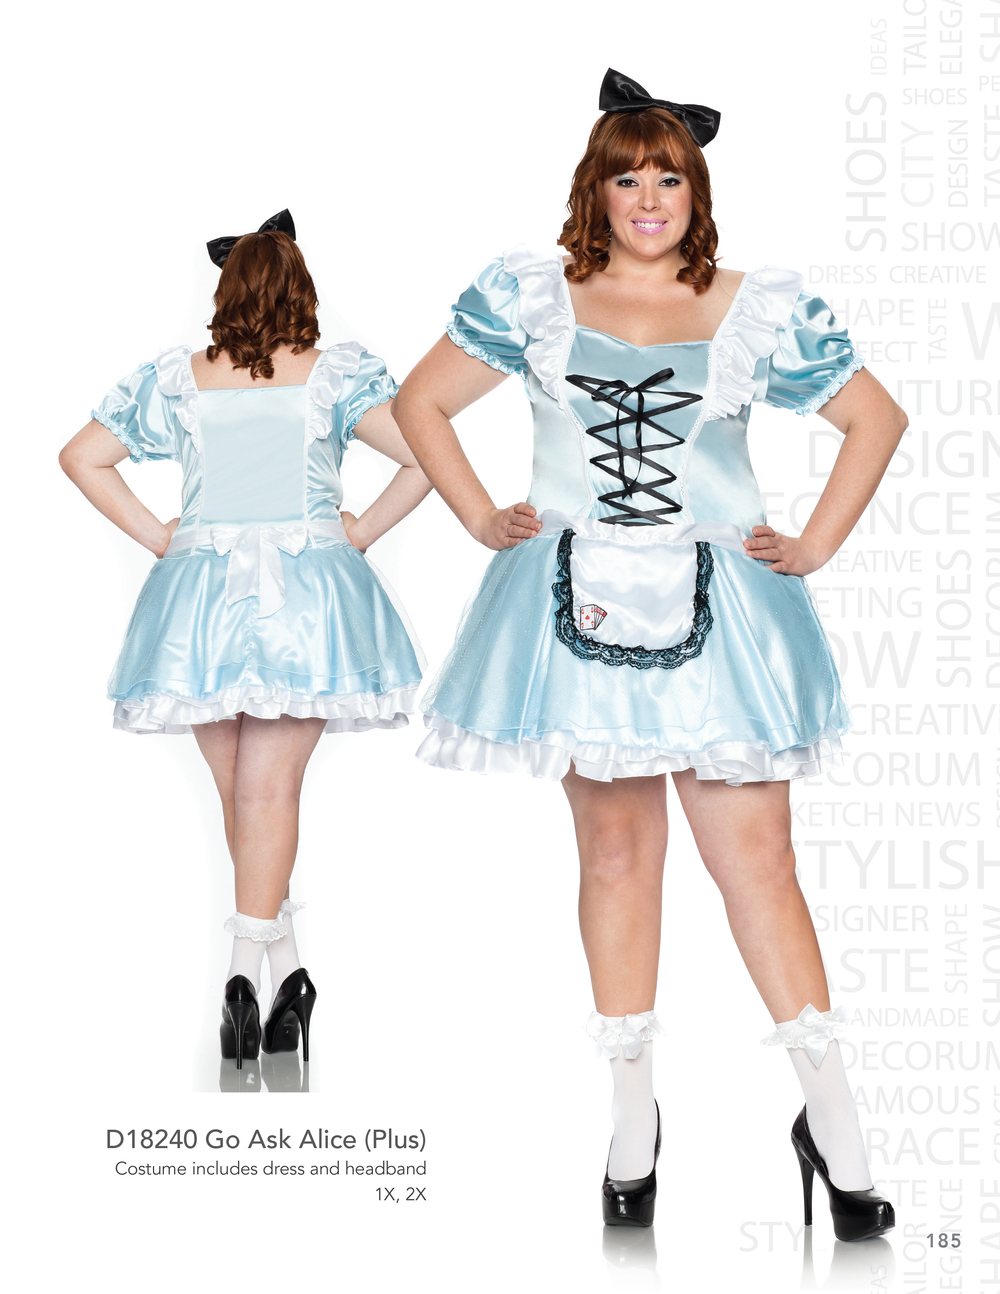 D18240 Go Ask Alice